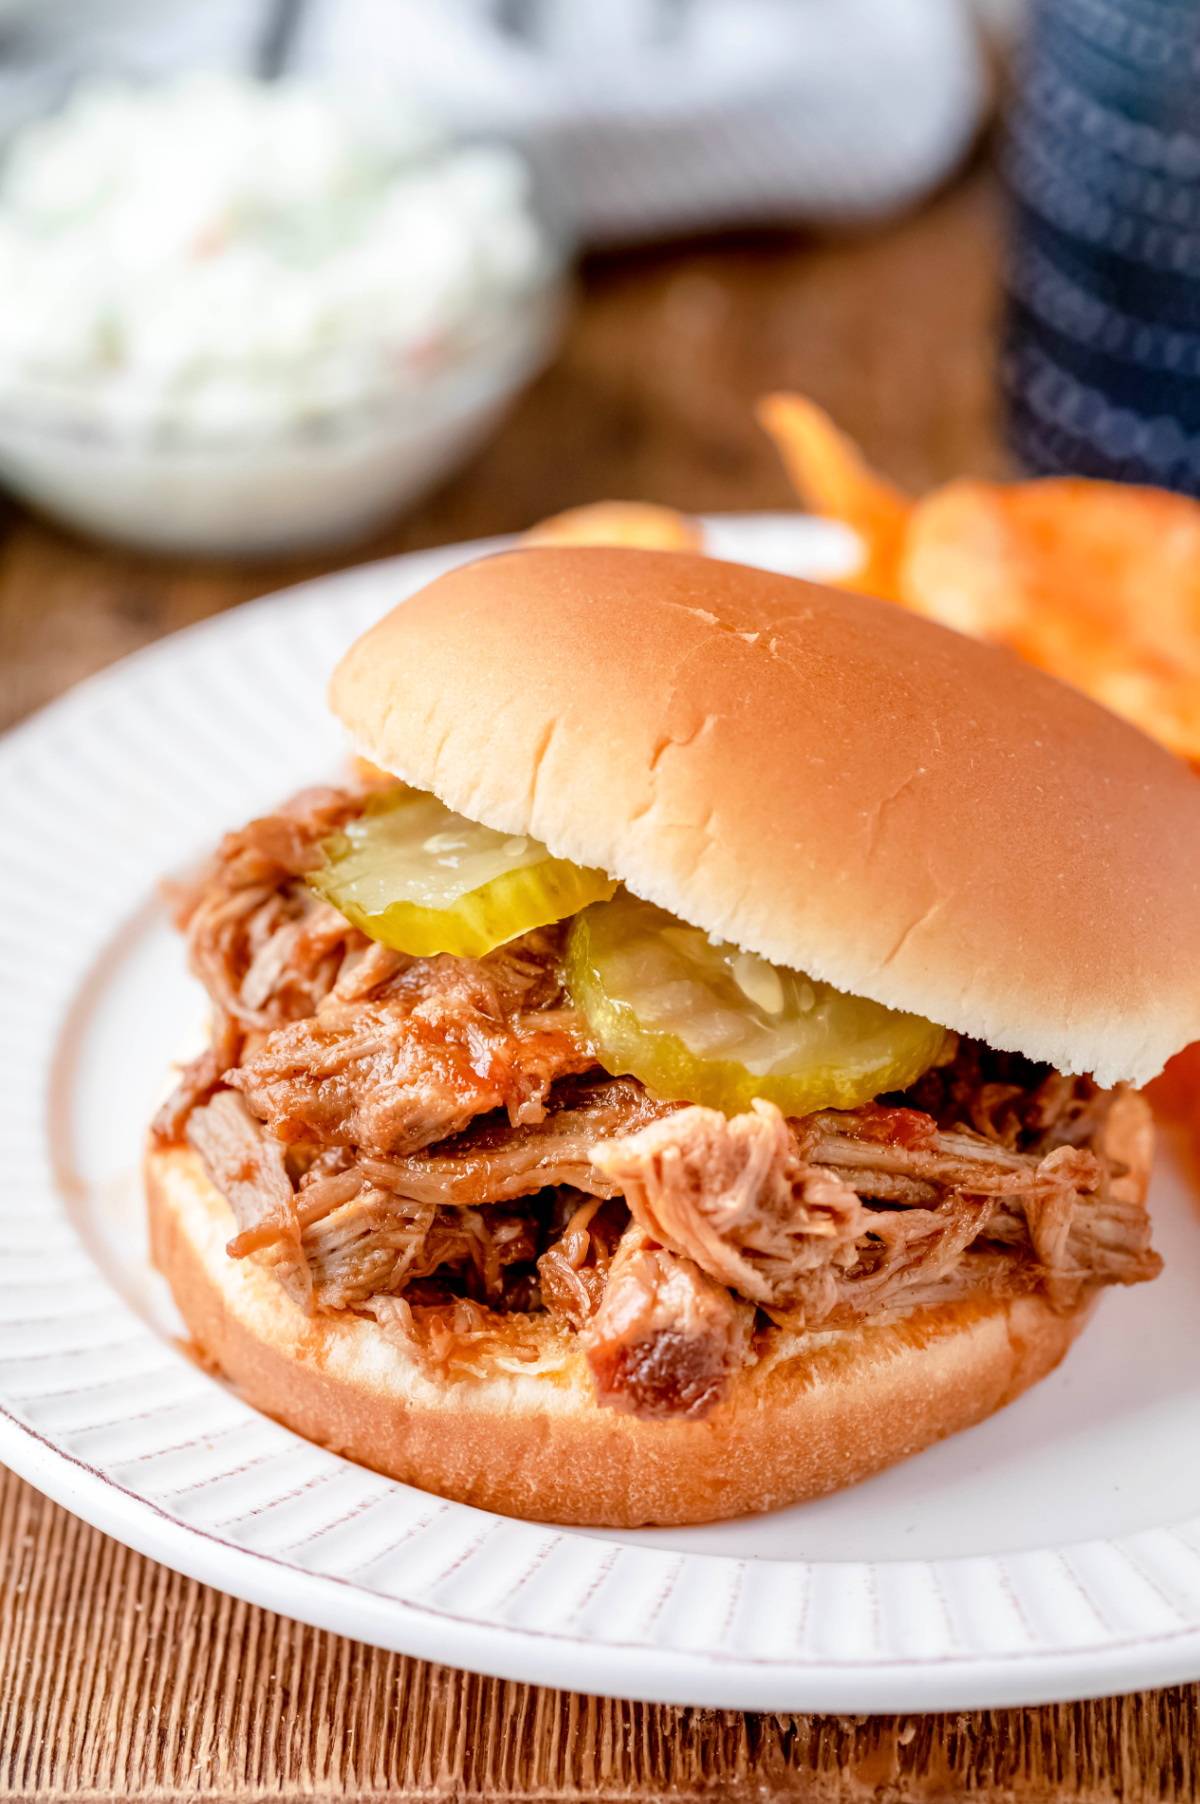 North Carolina pulled pork sandwich topped with pickles